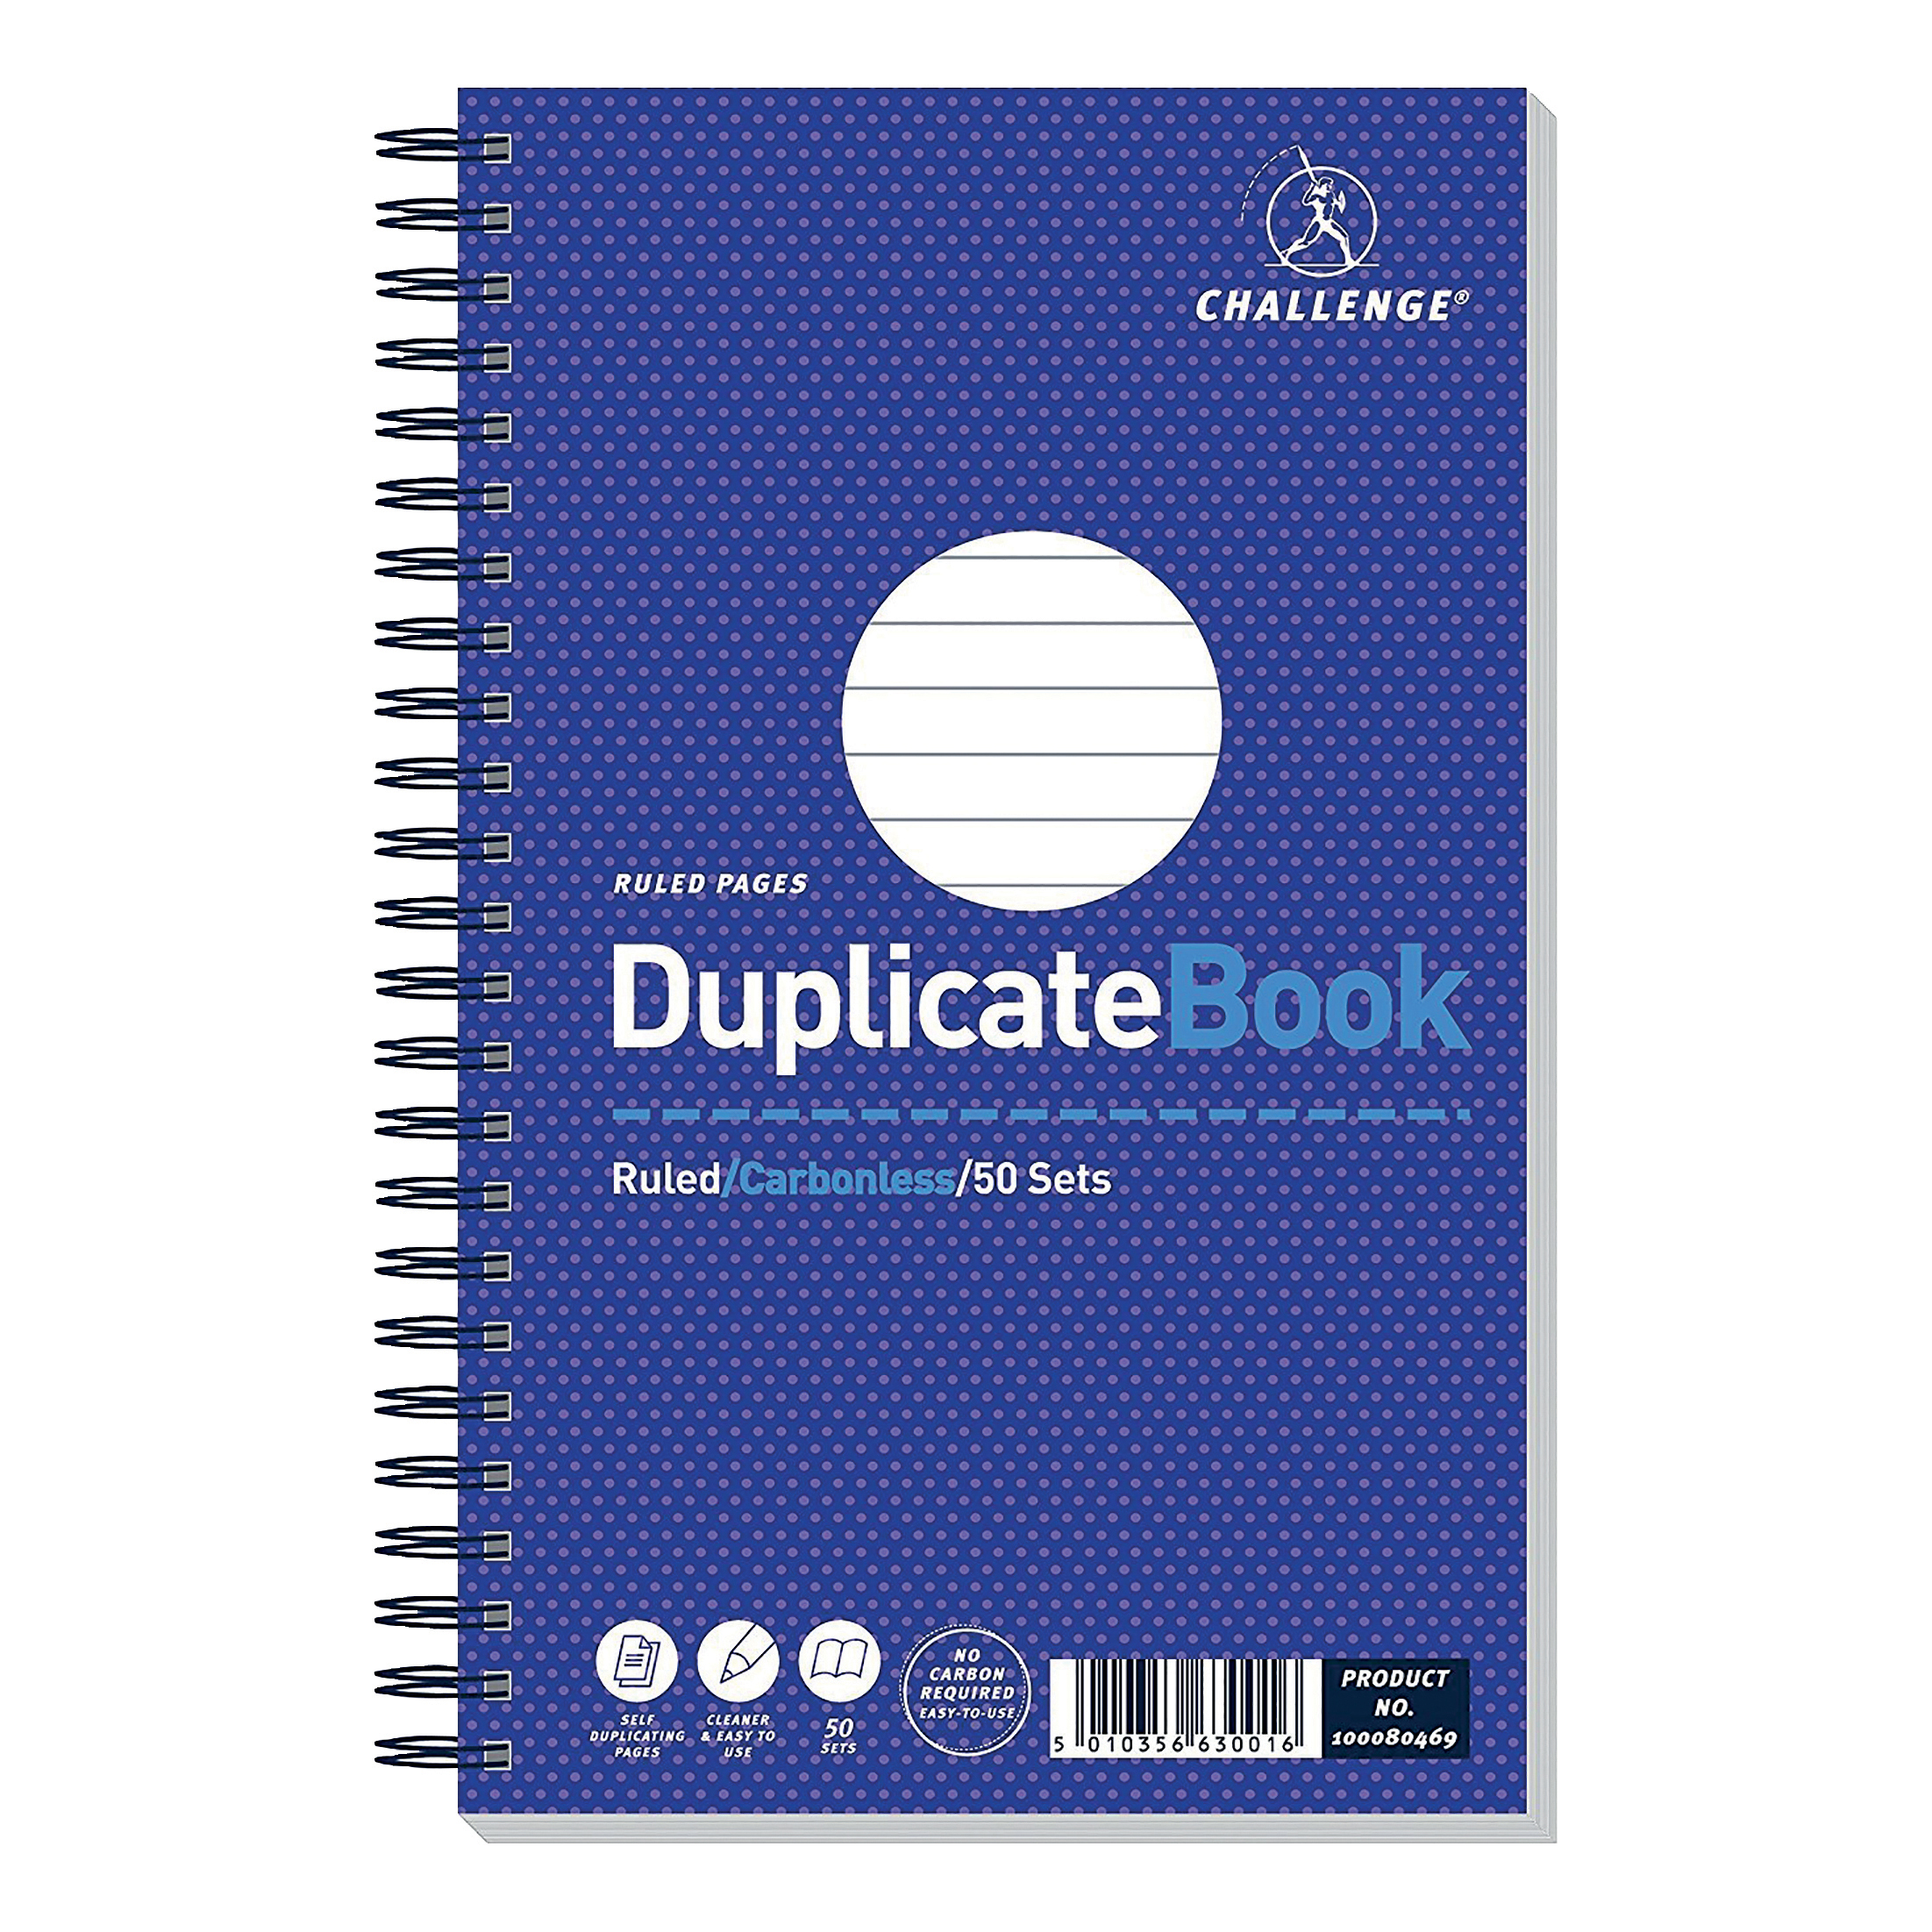 Duplicate Challenge Duplicate Book Carbonless Wirebound Ruled 50 Sets 210x130mm Ref 100080469 Pack 5